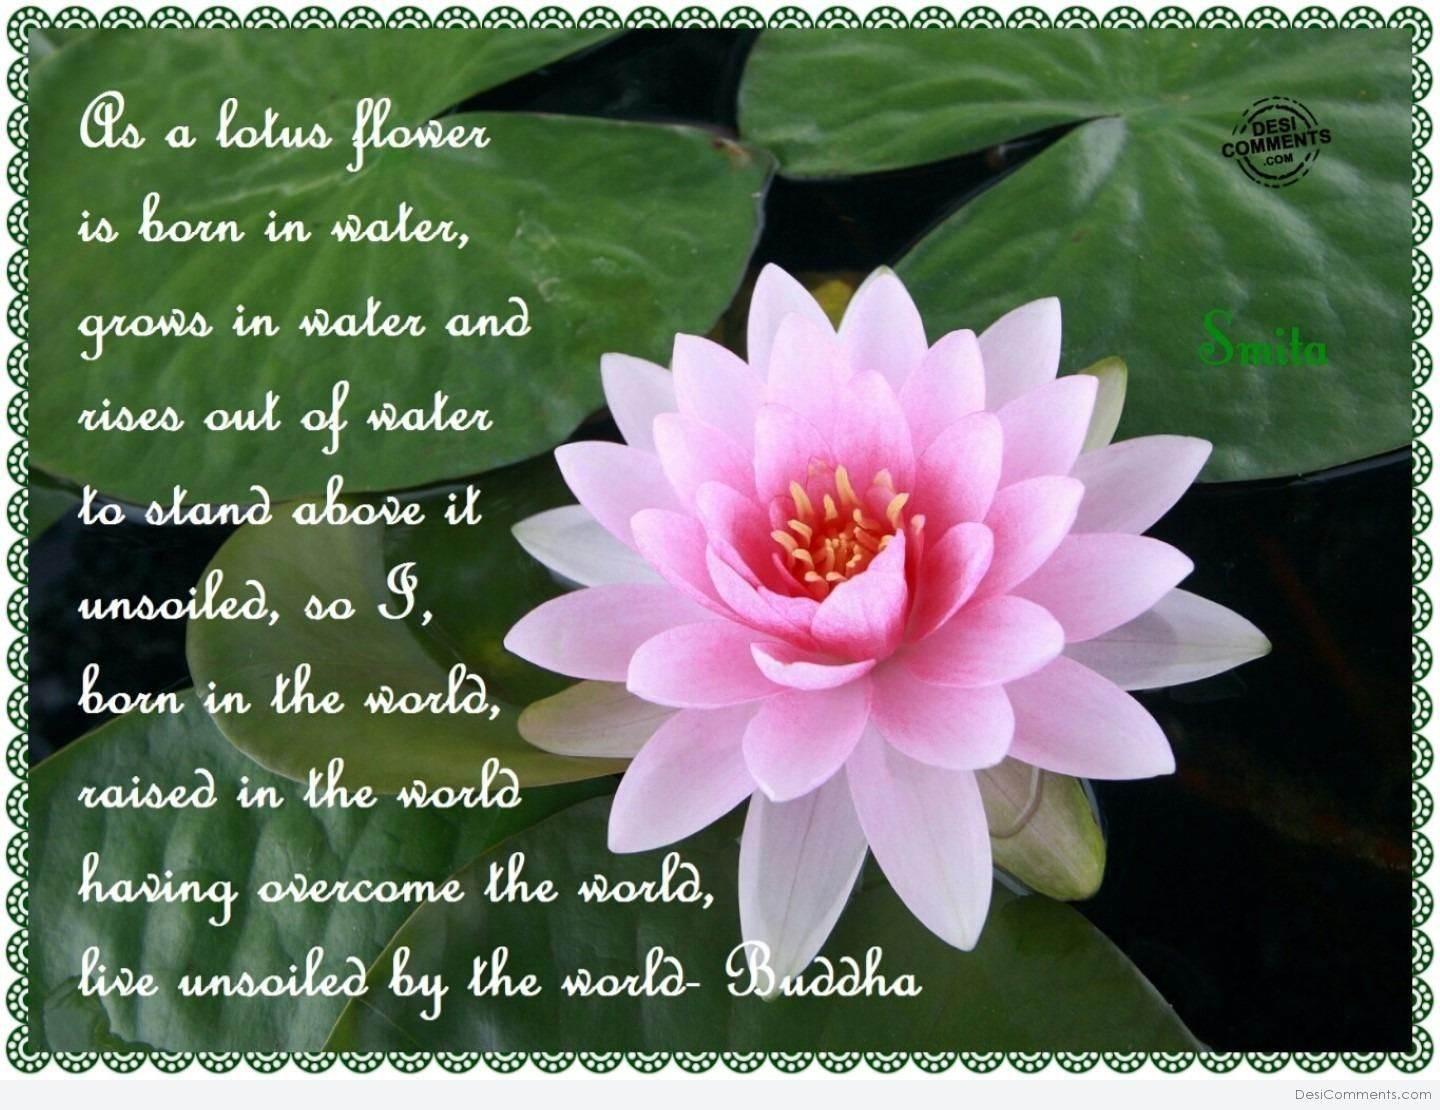 I Use The Lotus Flower As The Symbol On My Business Cards The Very